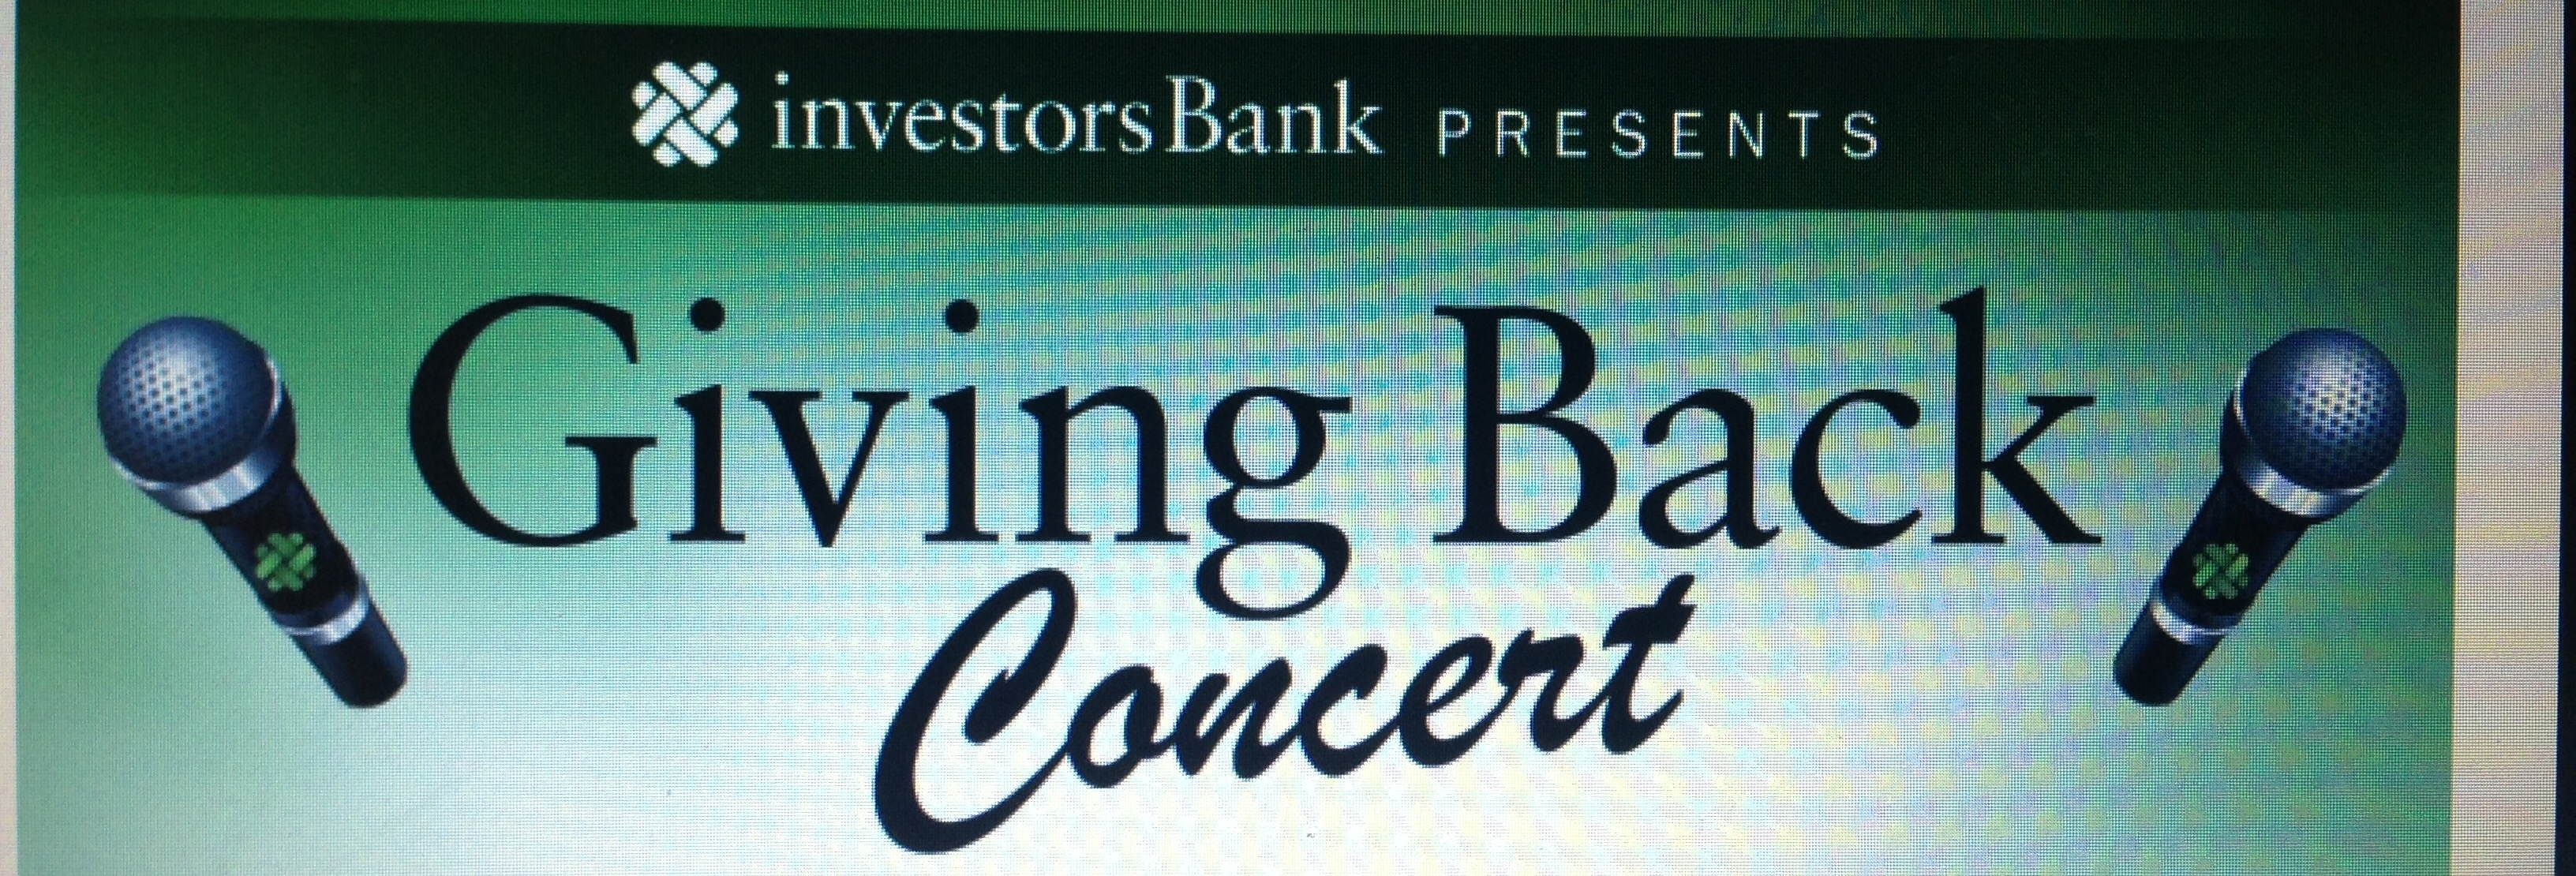 91379740fd6bd09c4b73_give_back_concert.JPG